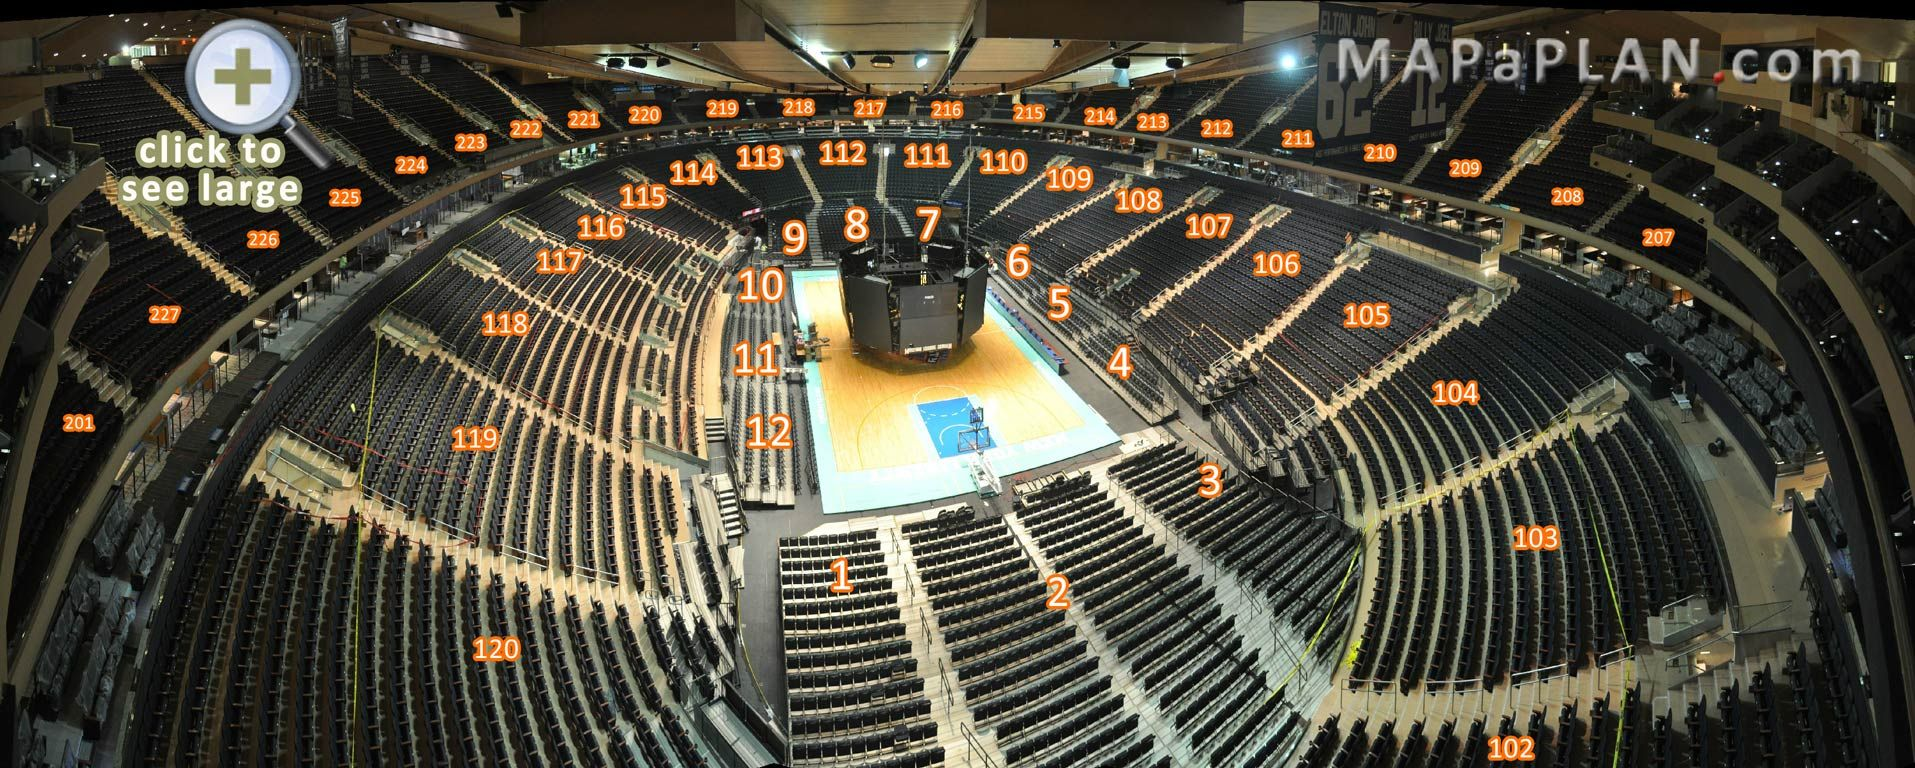 Madison square garden seating chart interactive basketball 3d panoramic photo concert seating for Seating chart for madison square garden